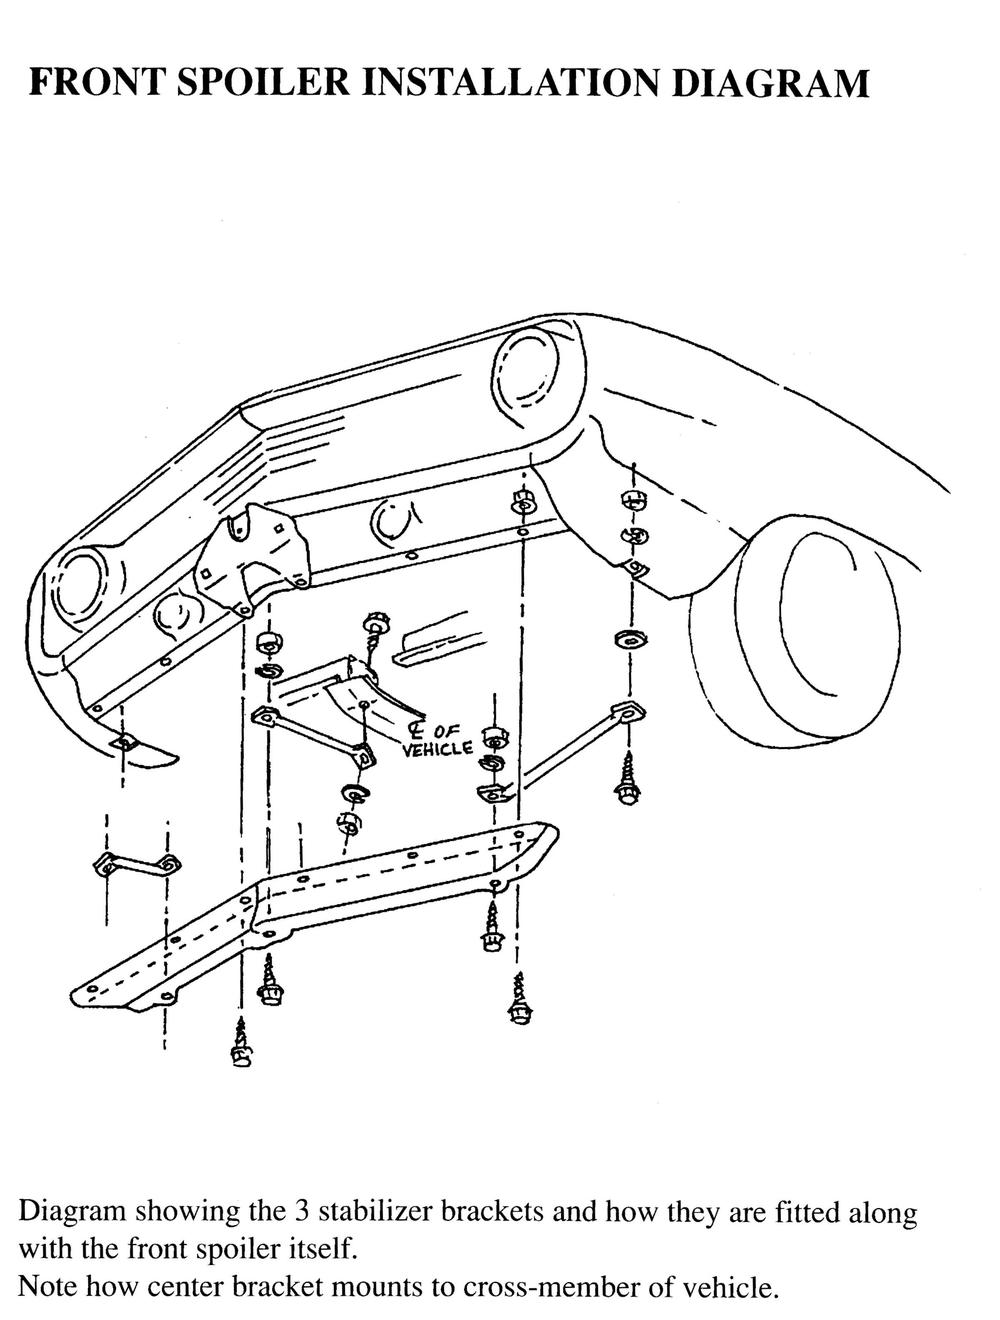 1968 Camaro Console Assembly Diagram Opinions About Wiring 69 Technical Blog For Part Installation Steve S Camaros Rh Stevescamaroparts Com 68 Gauges